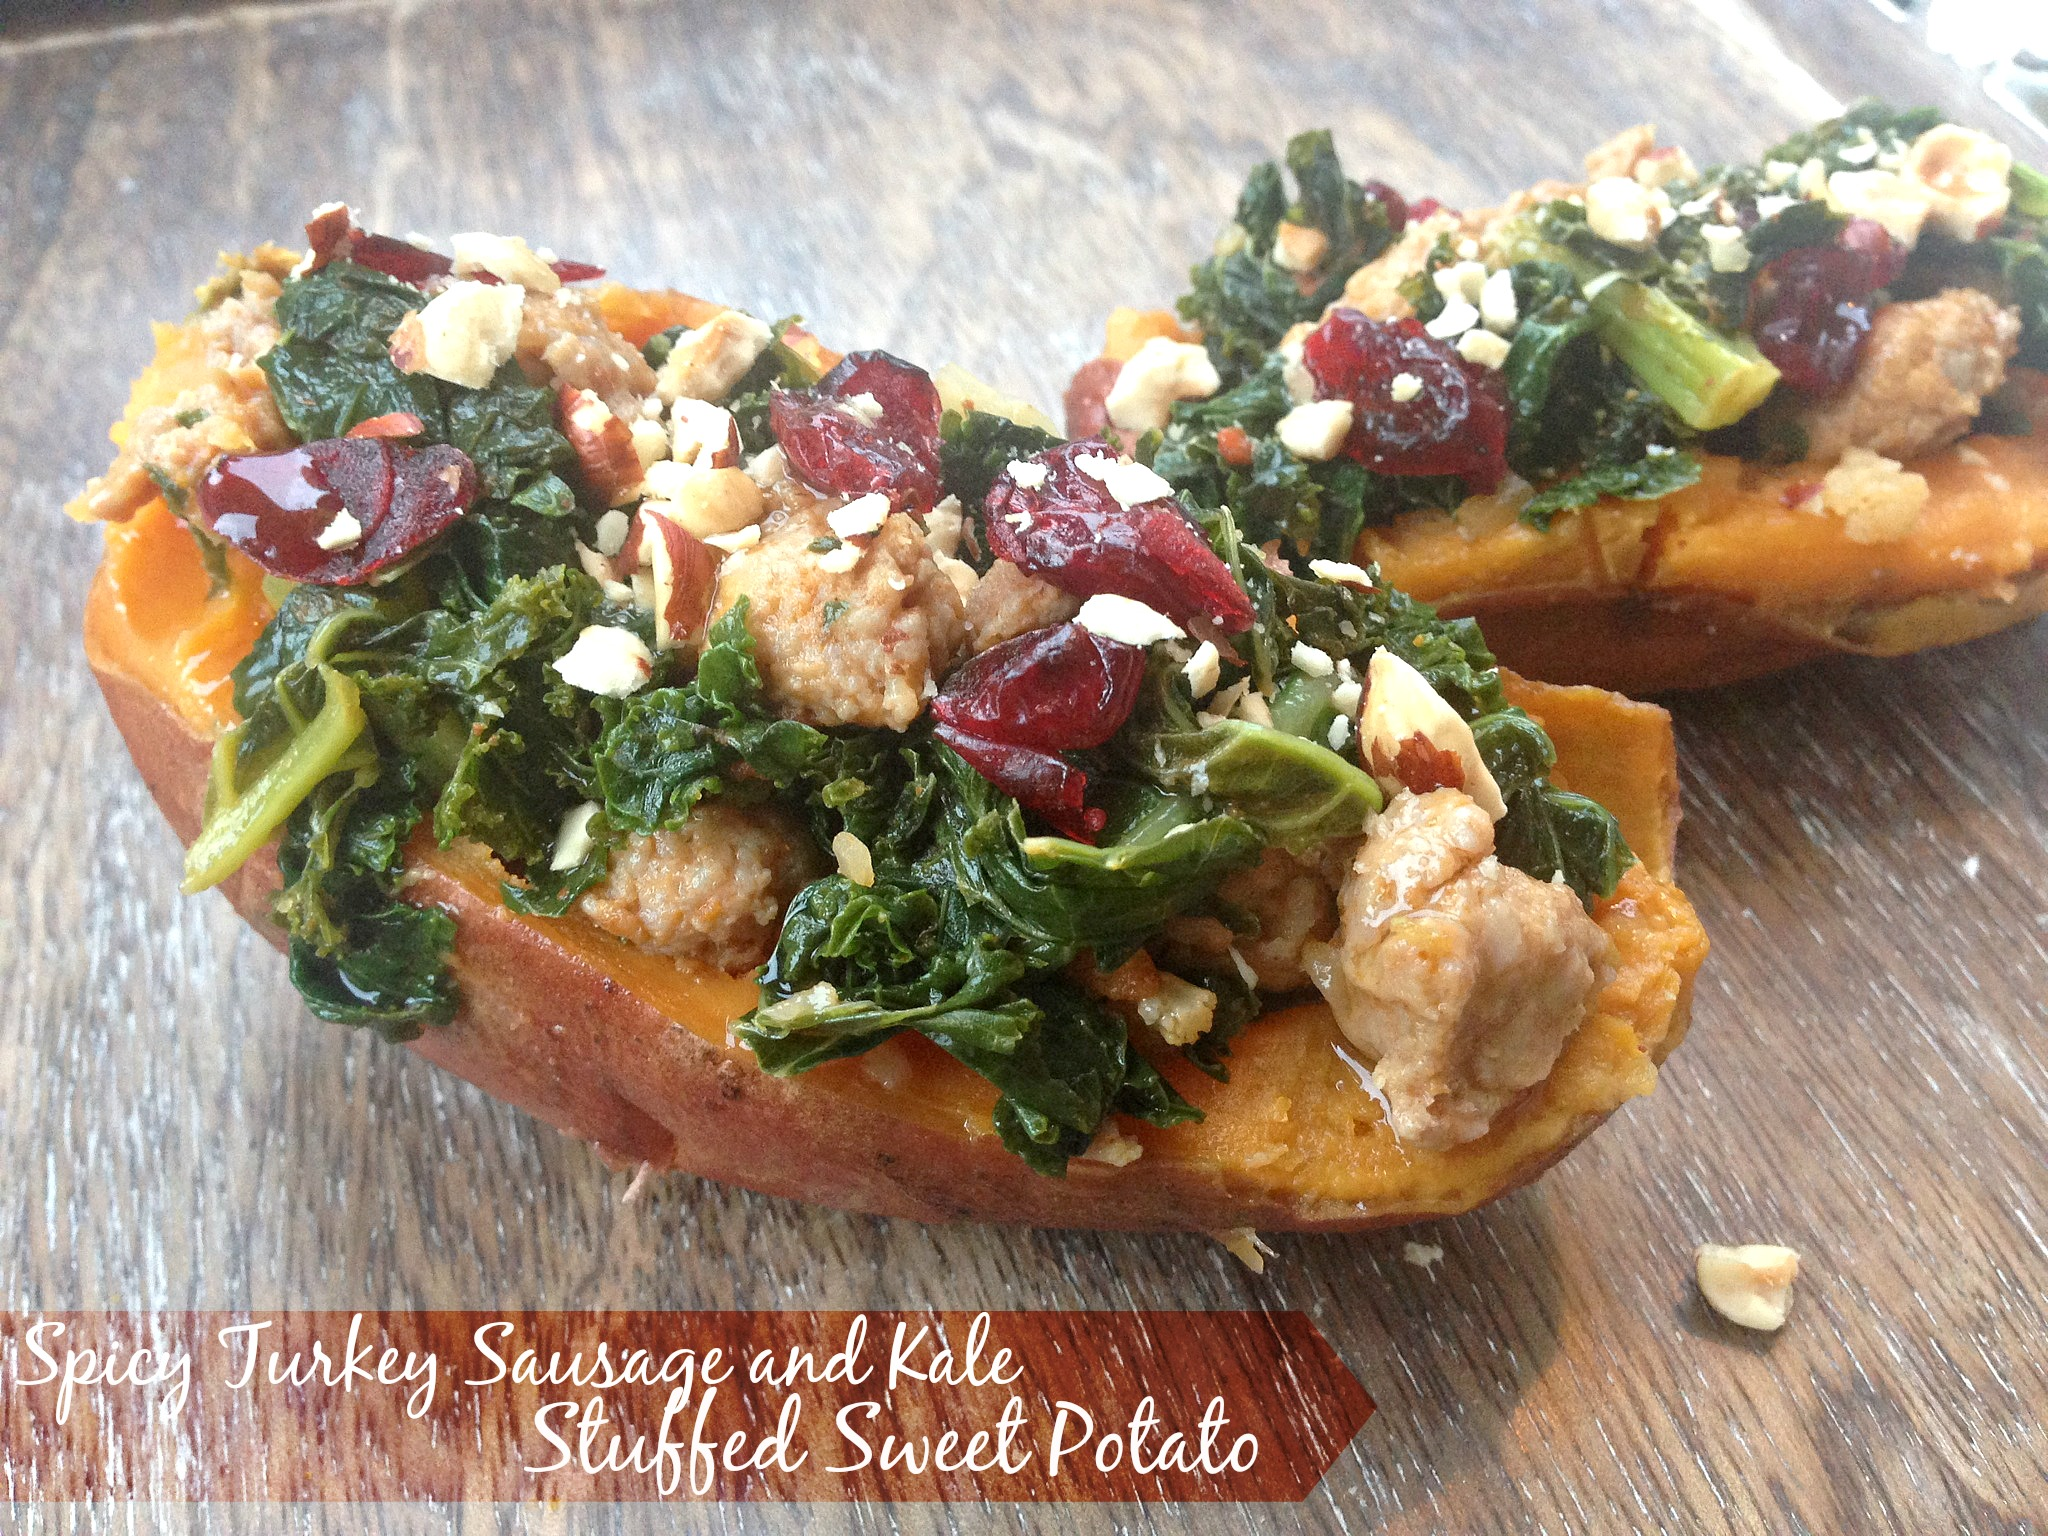 Spicy Turkey Sausage and Kale Stuffed Sweet Potatoes